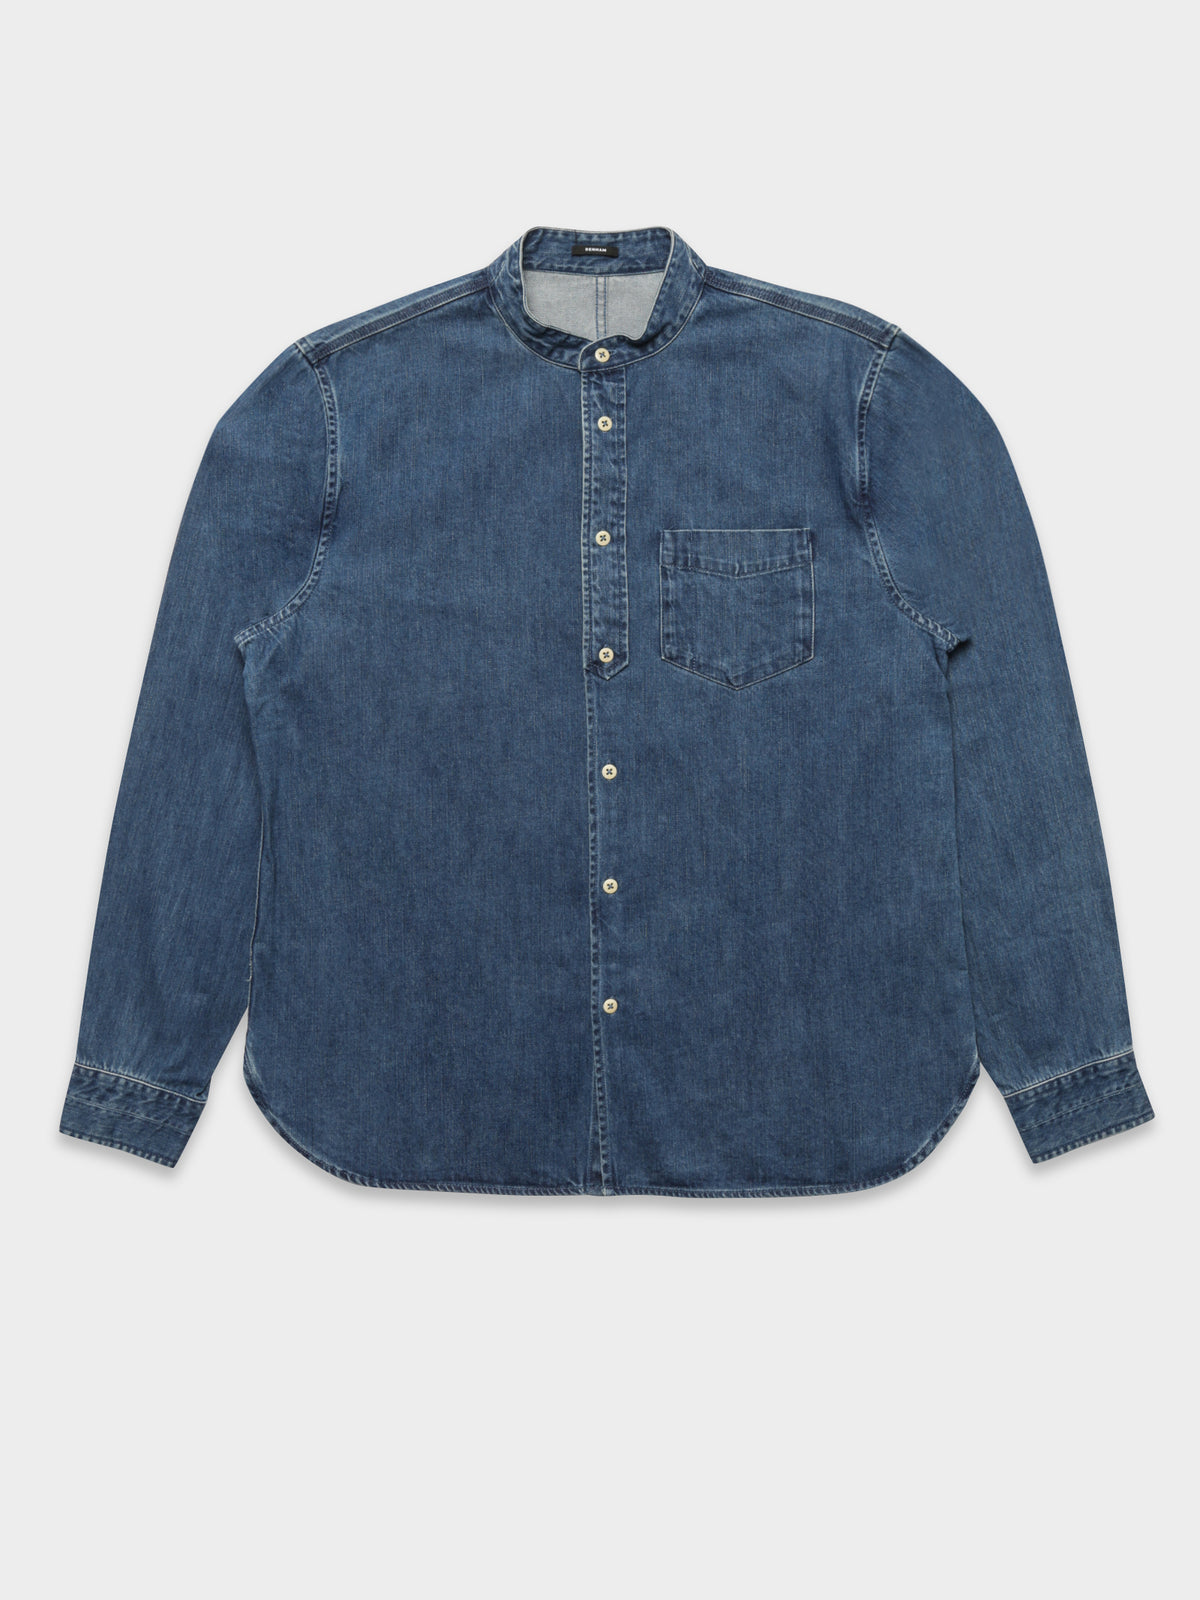 Store Button Long Sleeve Shirt in Indigo